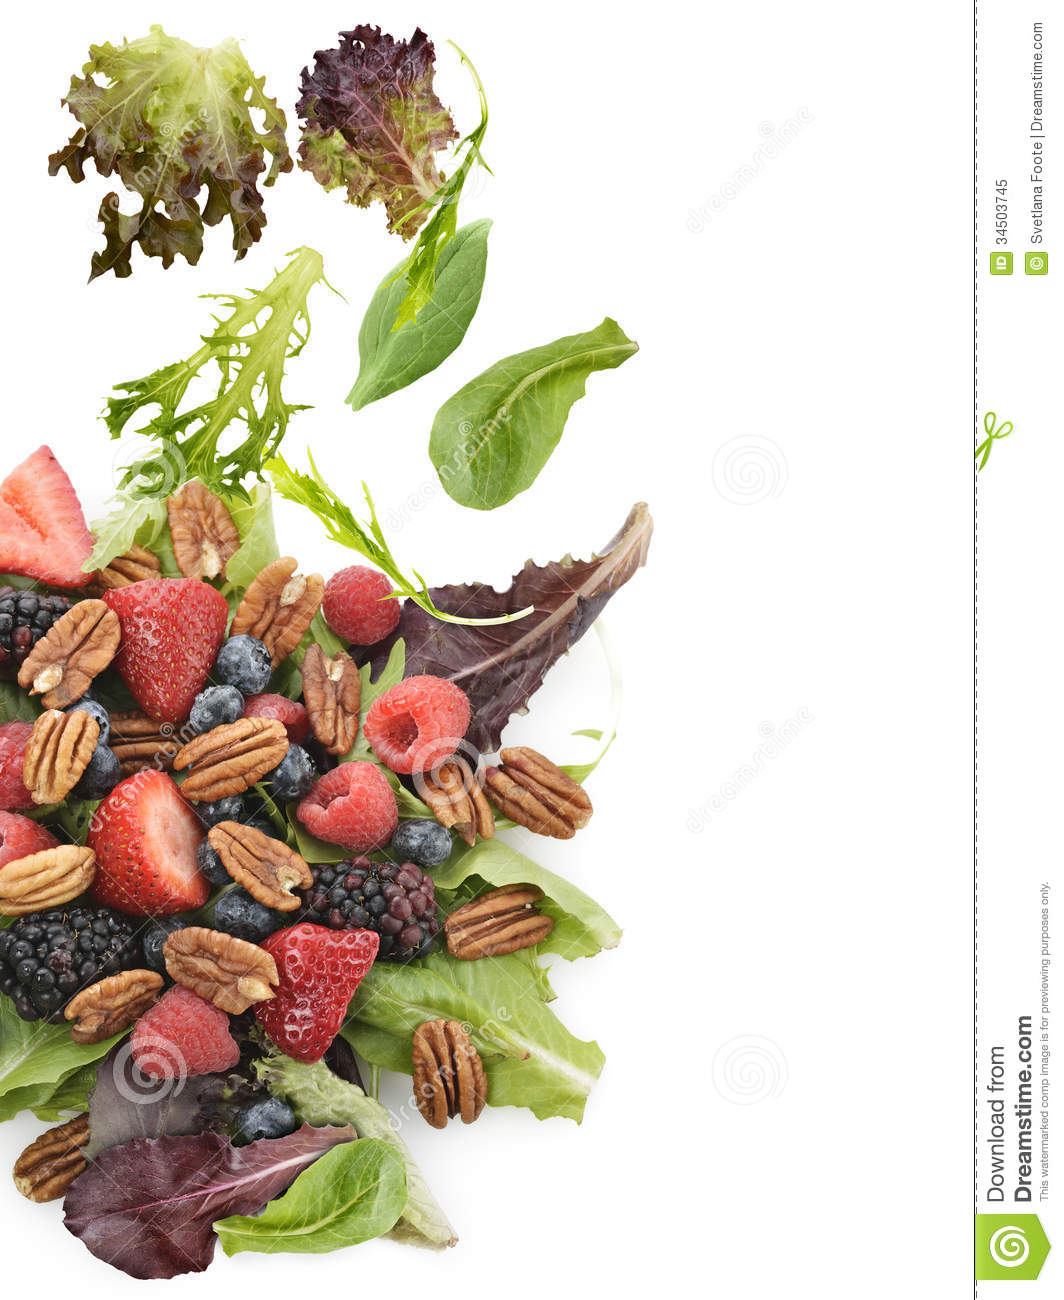 Spring Salad With Berries And Peanuts On White Background.